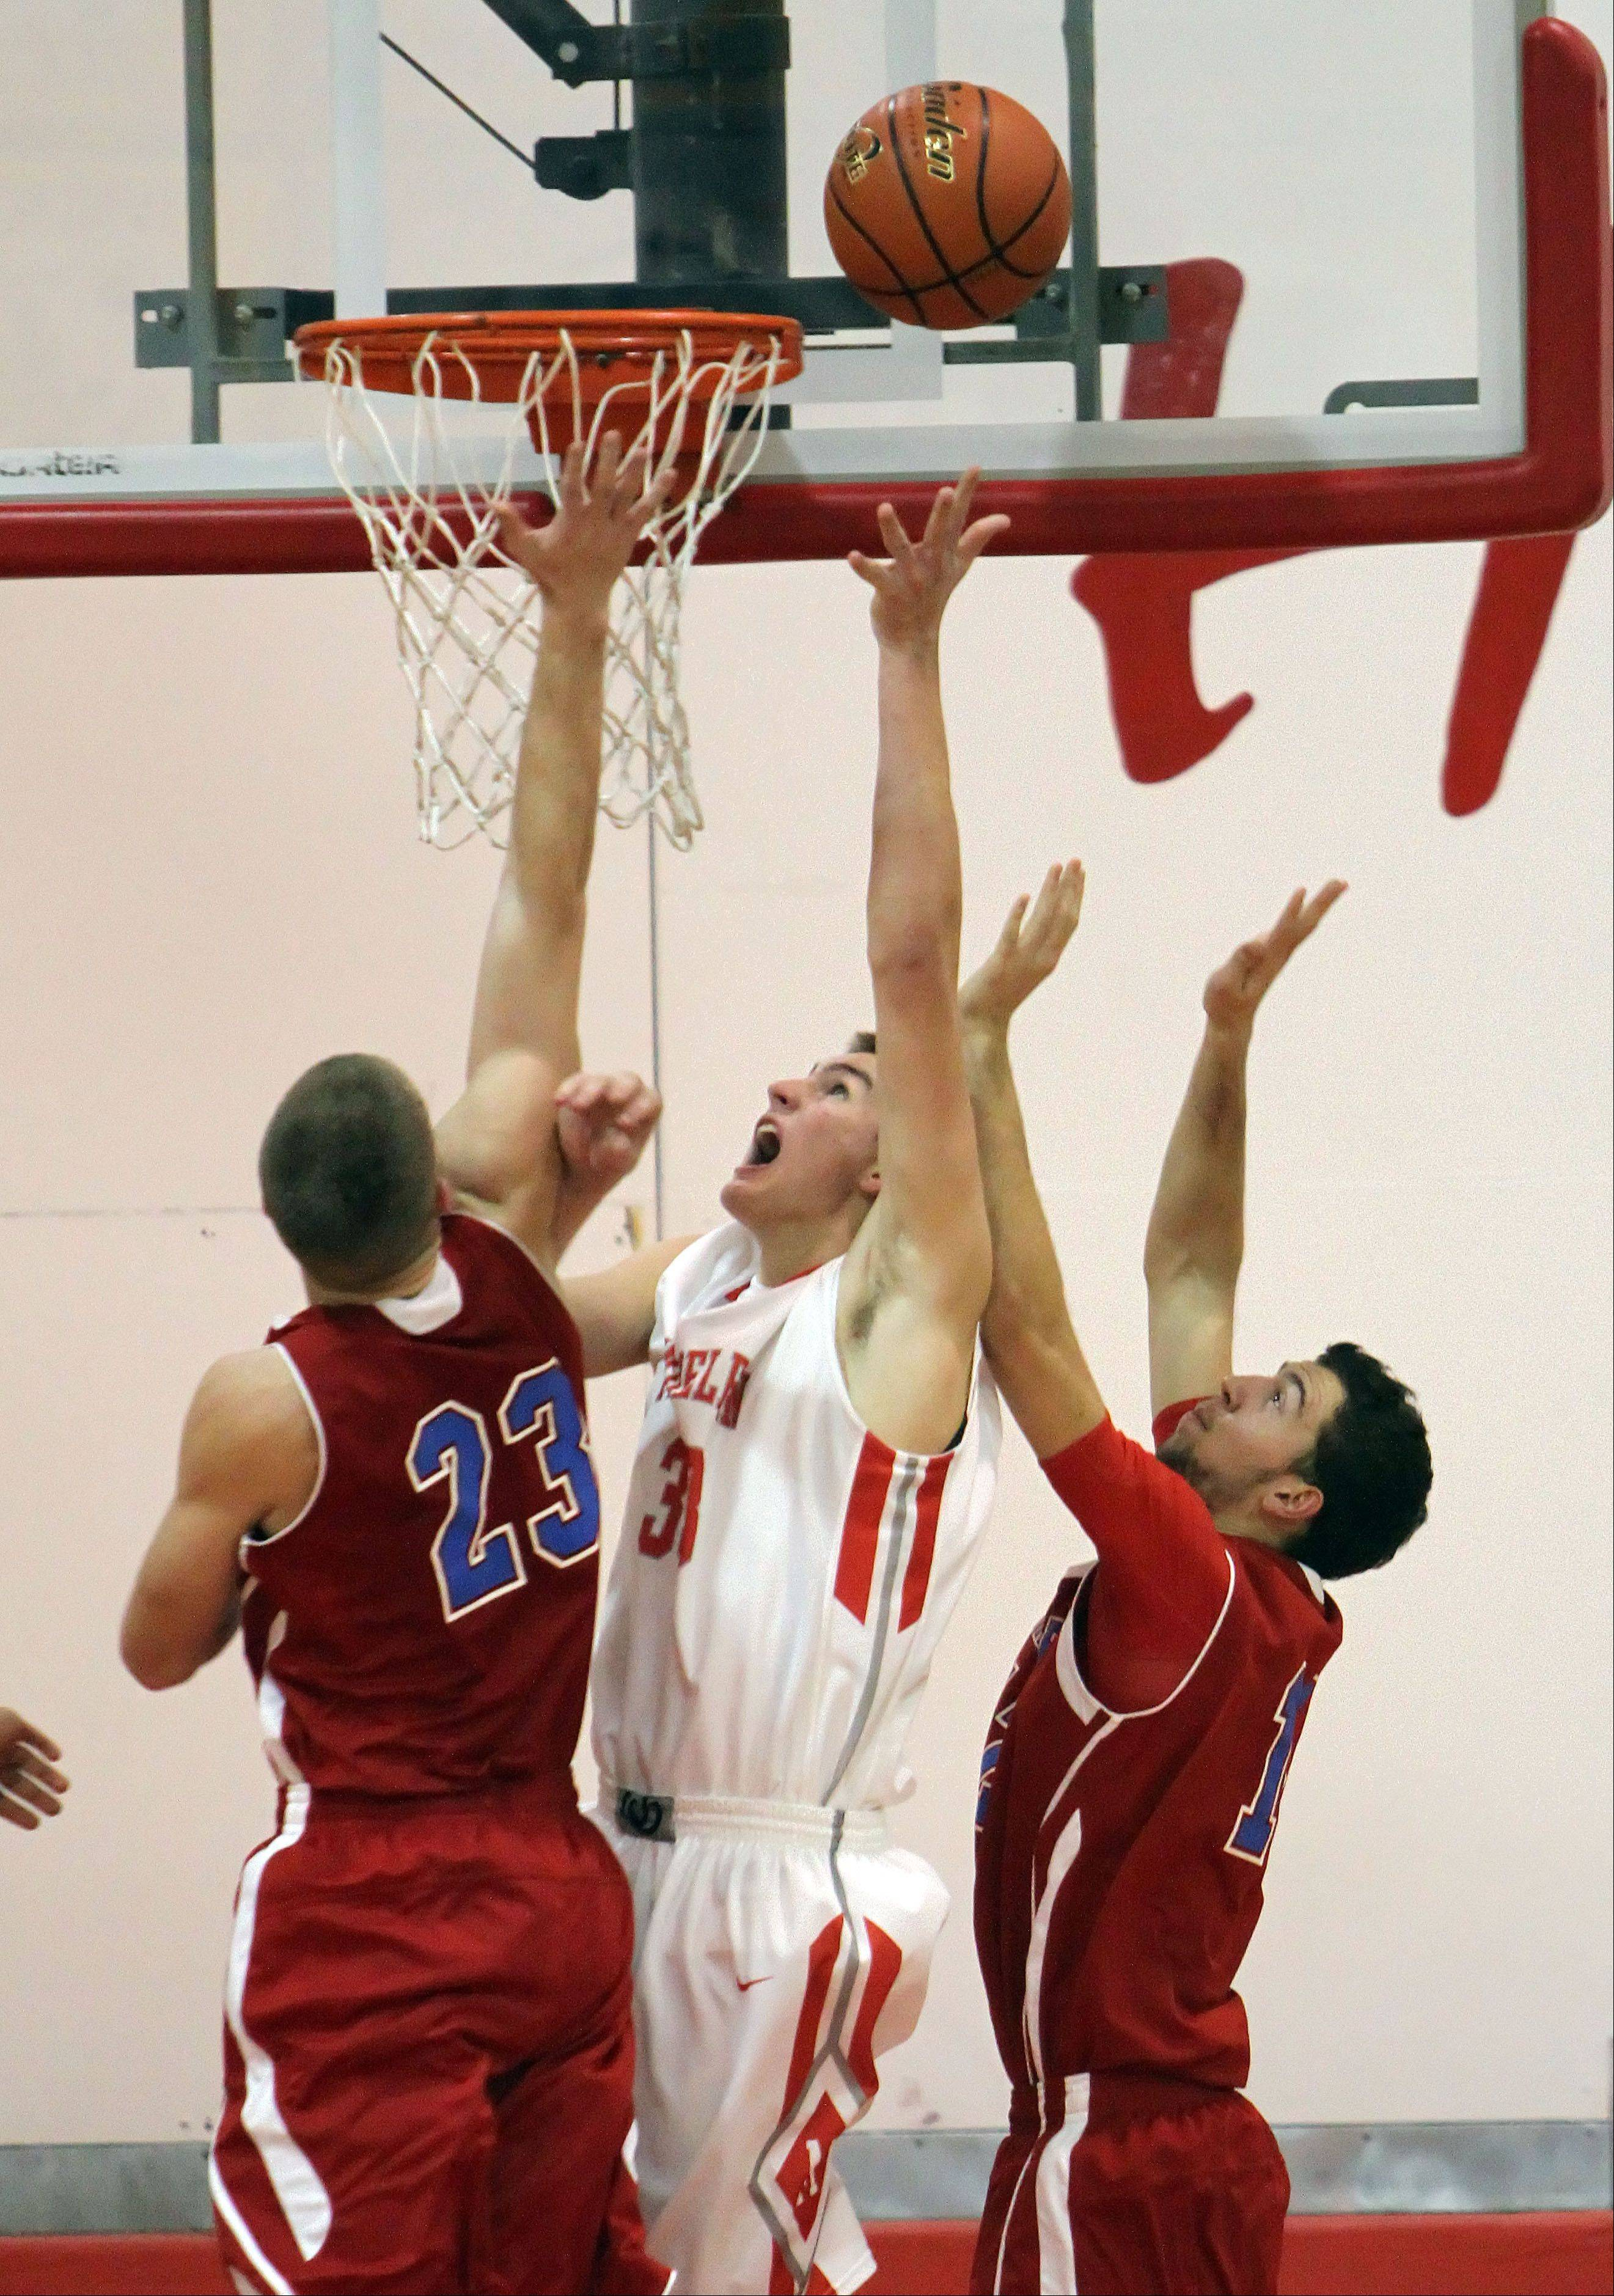 Mundelein's Sean O'Brien splits in Lakes' Jake Kohler, left, and Michal Tomasiewicz on Tuesday night at Mundelein.